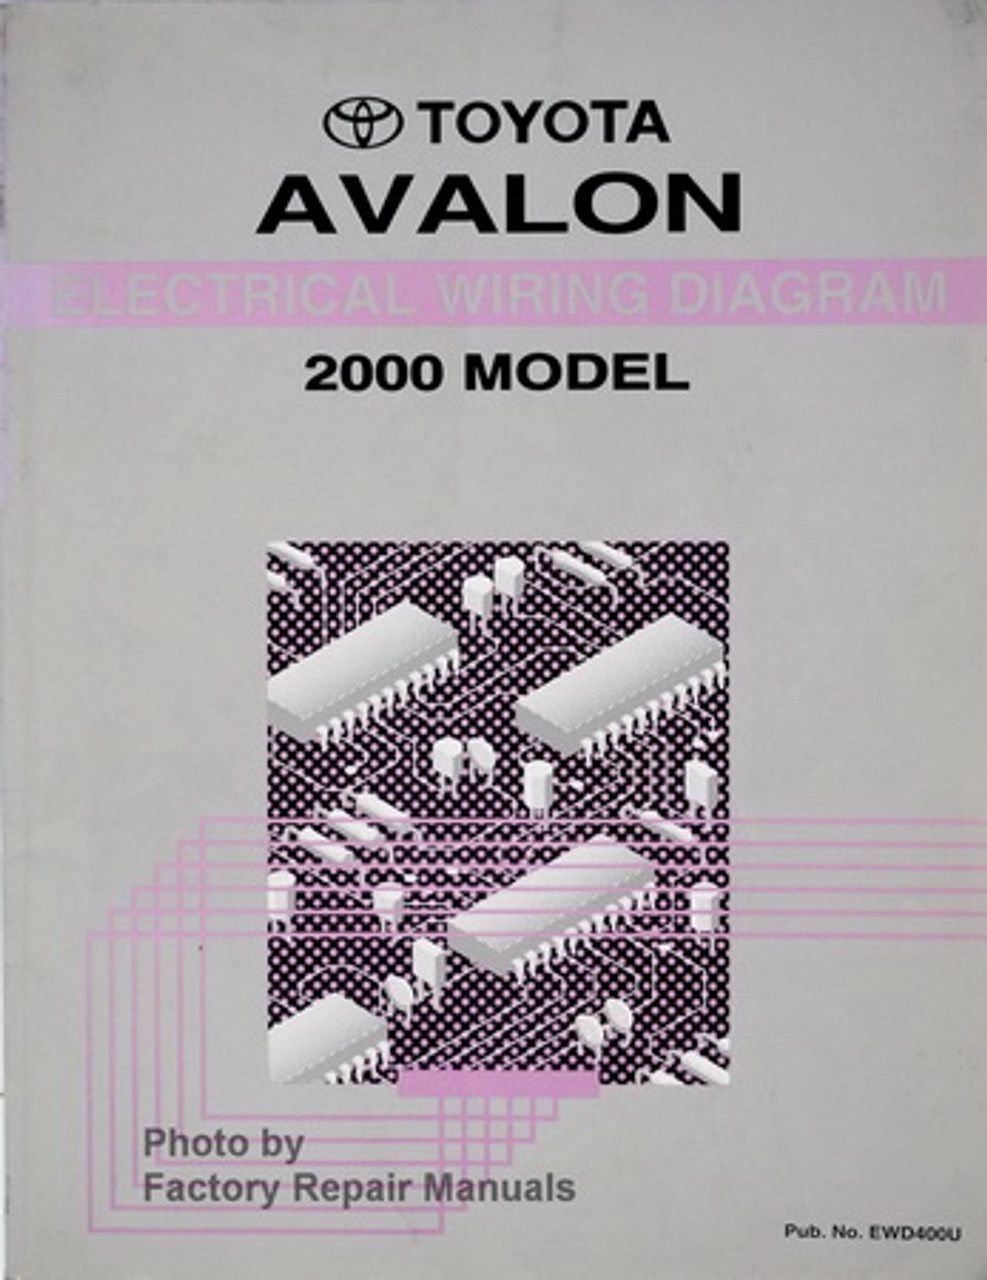 2000 Toyota Avalon Electrical Wiring Diagrams Original Factory Manual